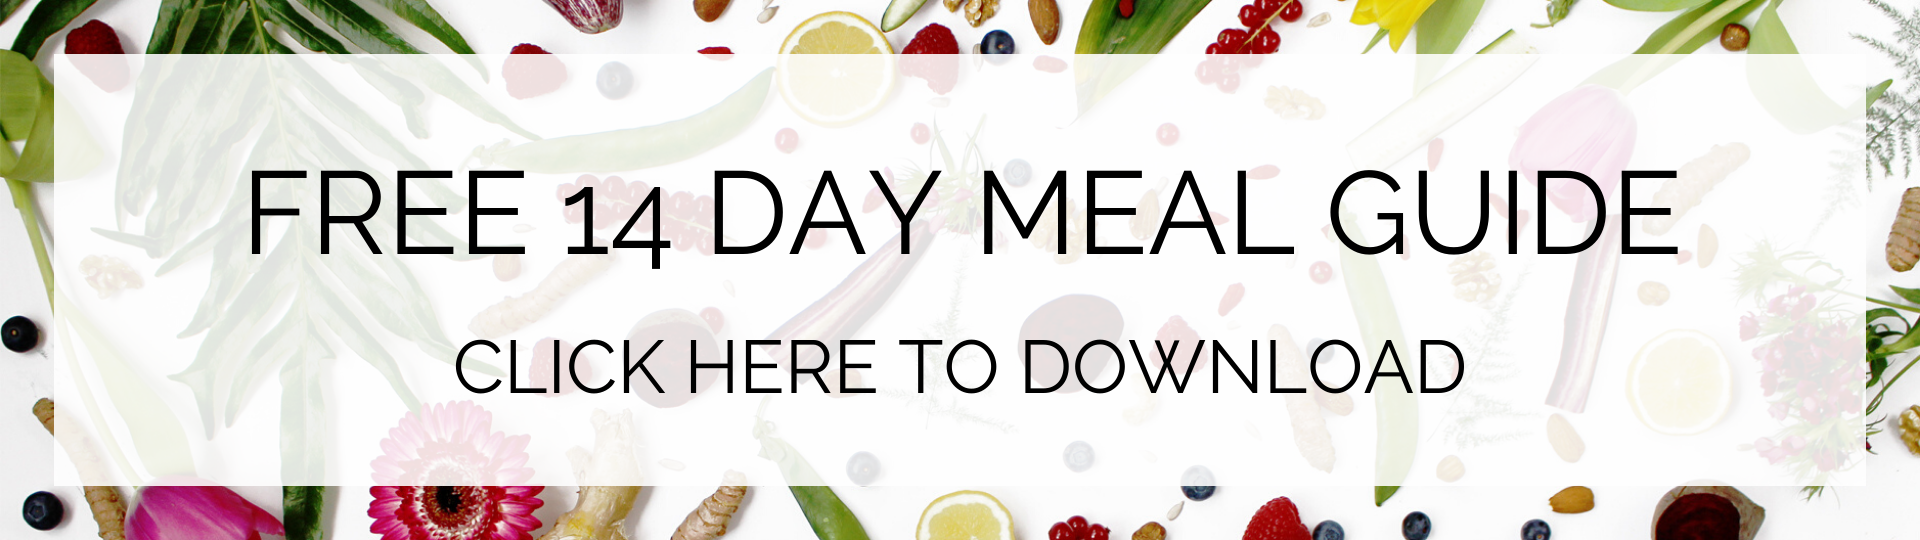 FREE 14 DAY MEAL GUIDE